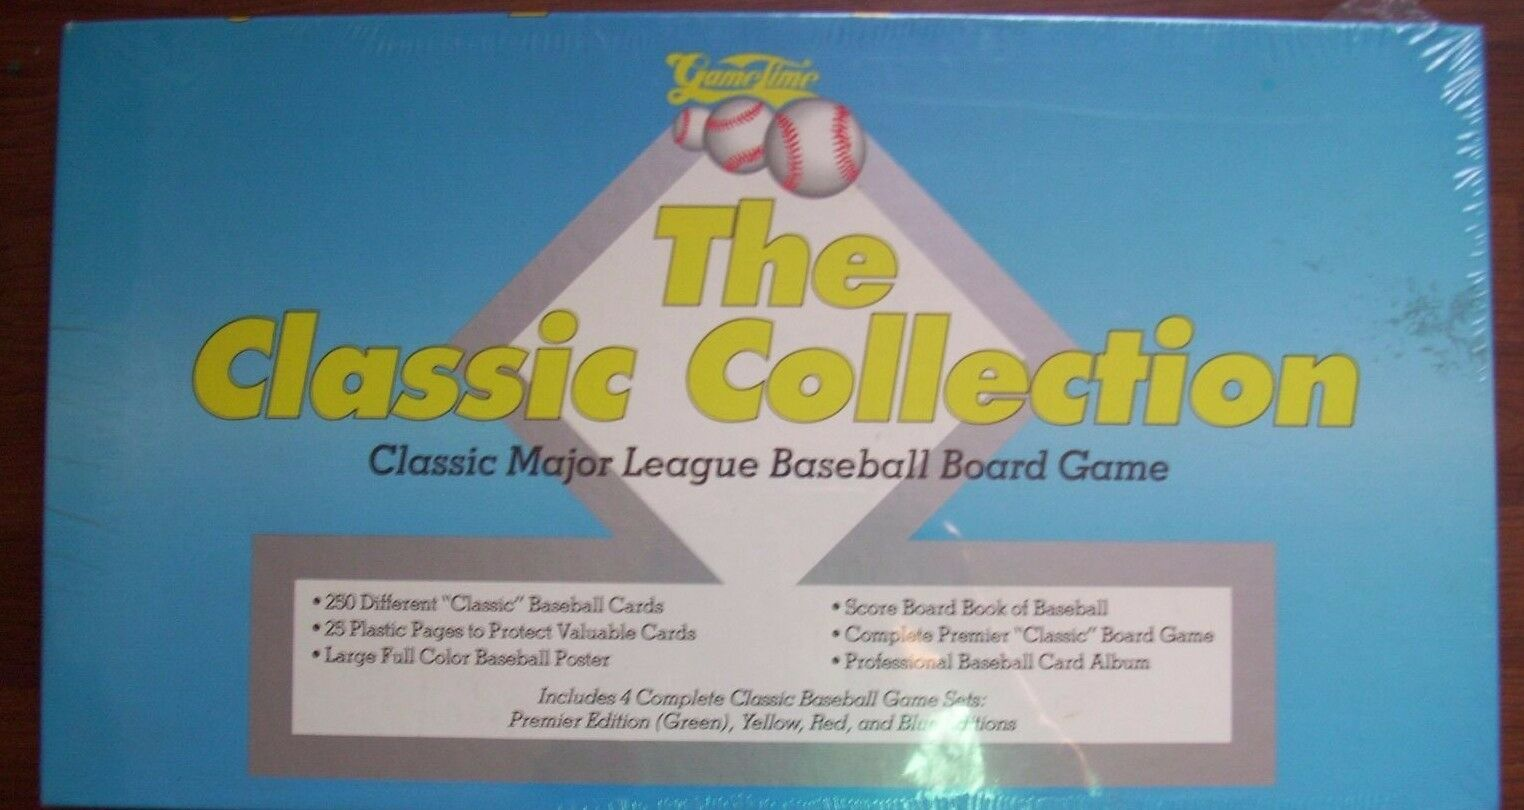 Game Time the classic collection classique Major League Baseball Board Game